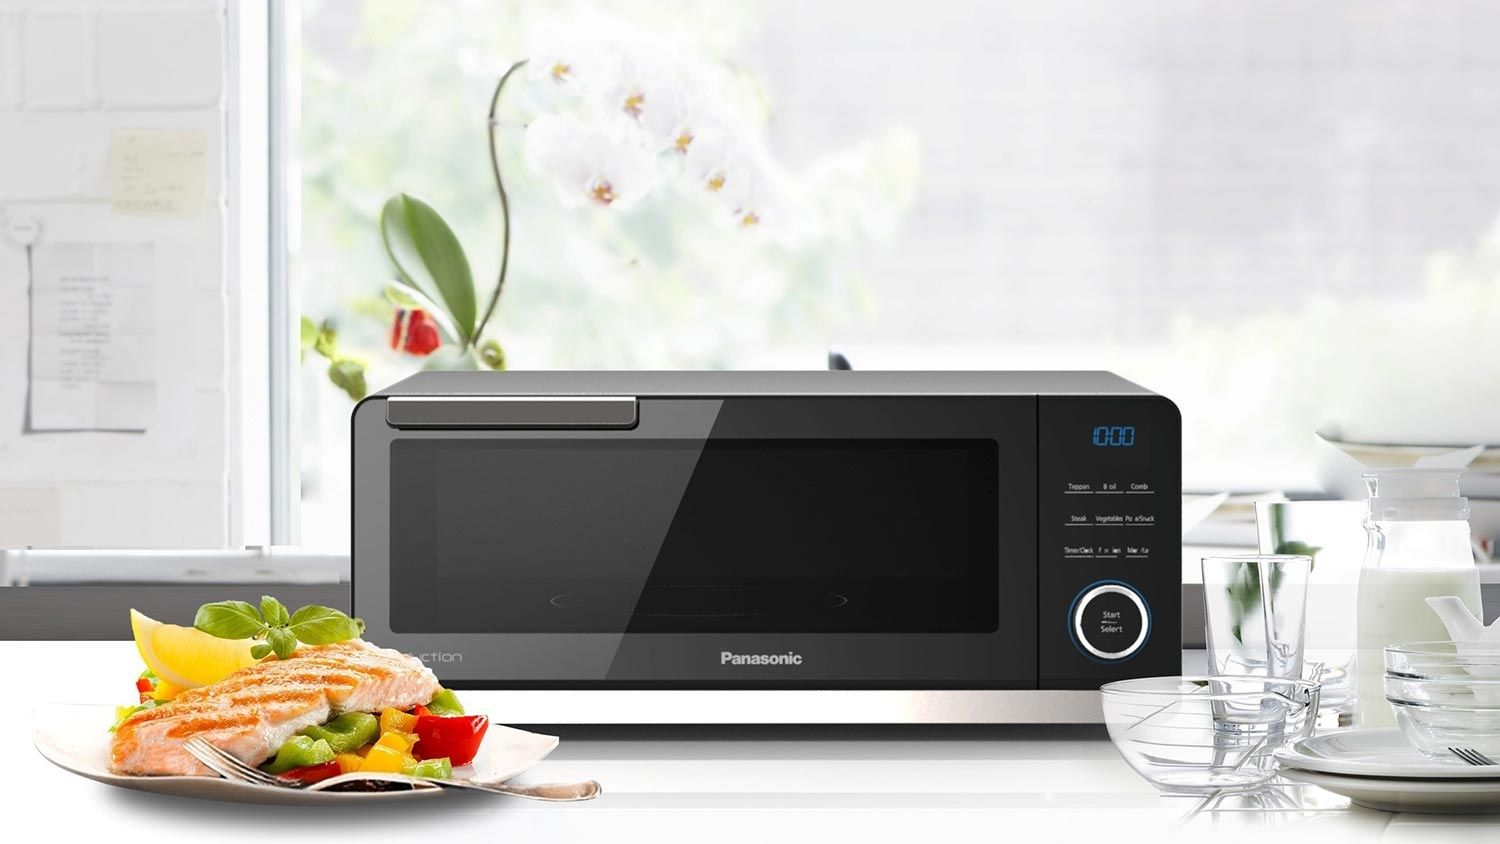 Panasonic Unveils Countertop Induction Oven Induction Oven